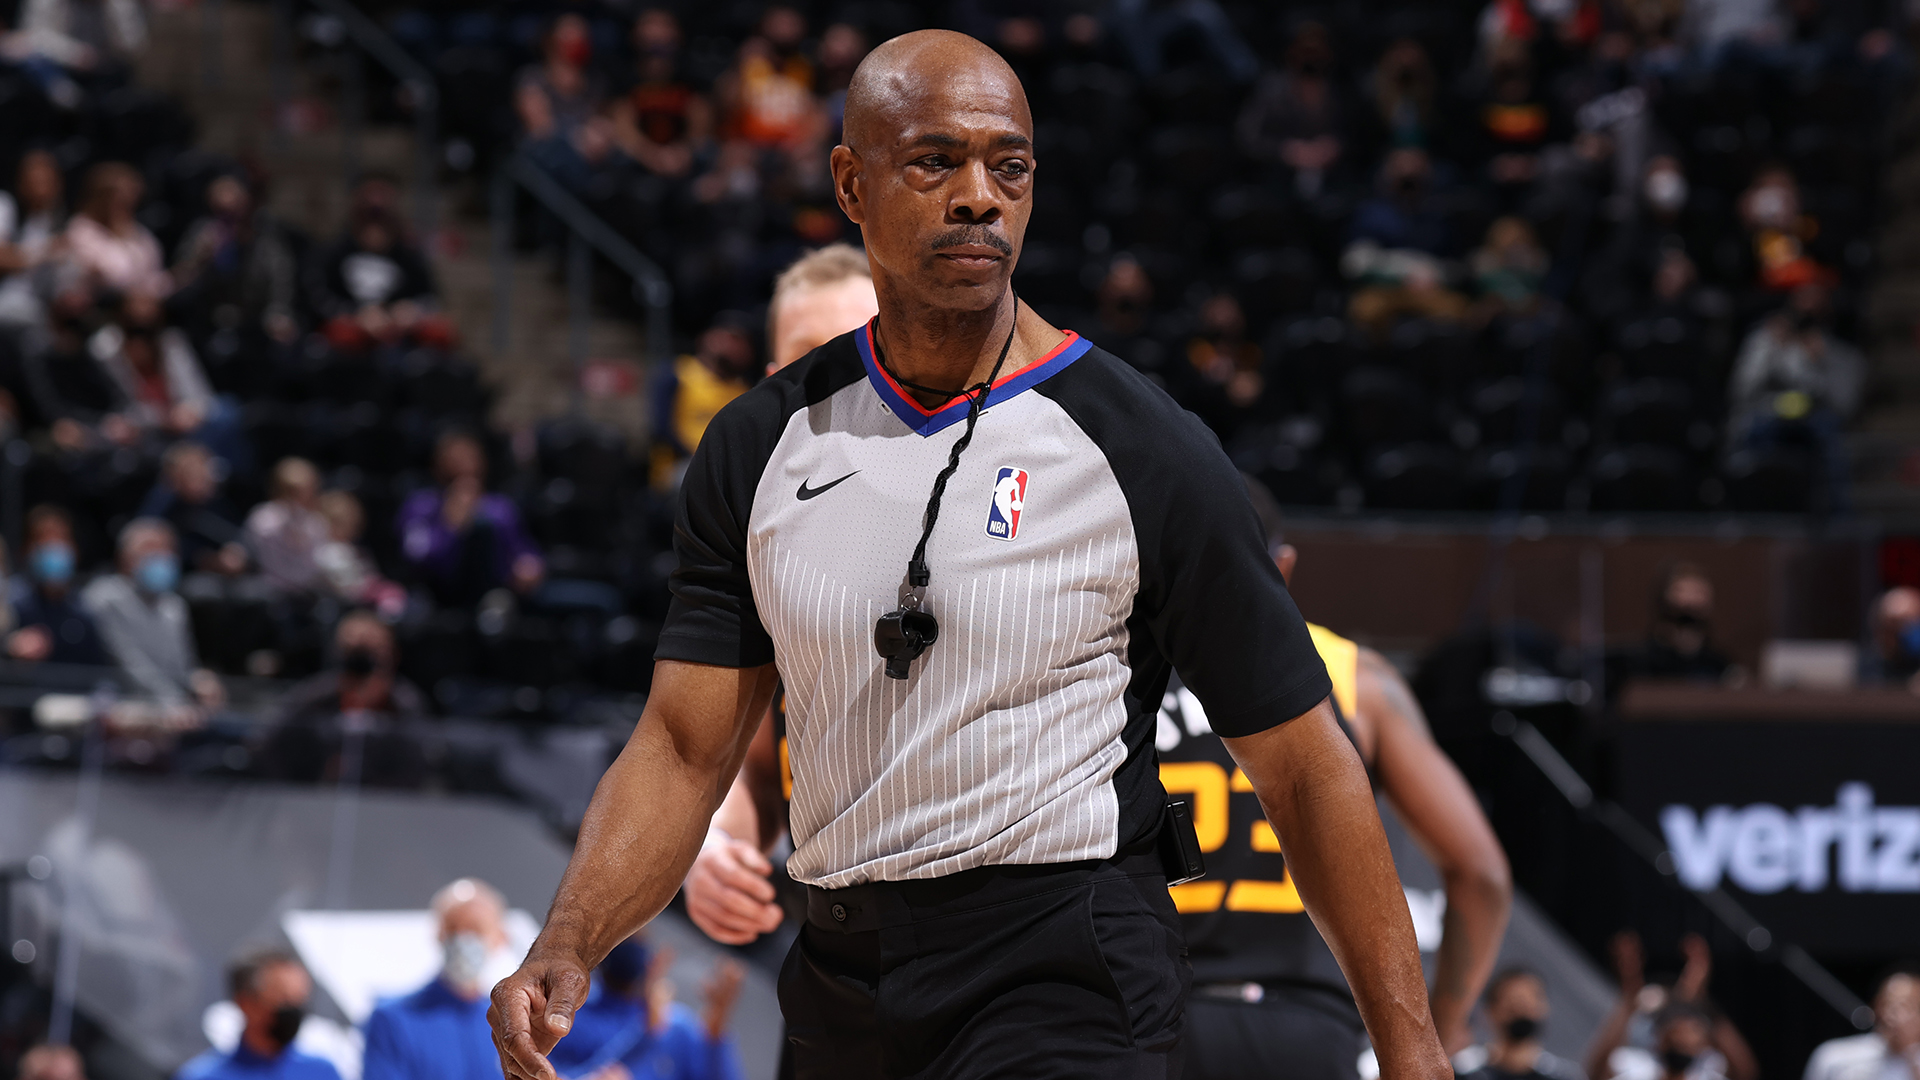 NBA Referees Blogtable: Advice and impact of the HBCU experience